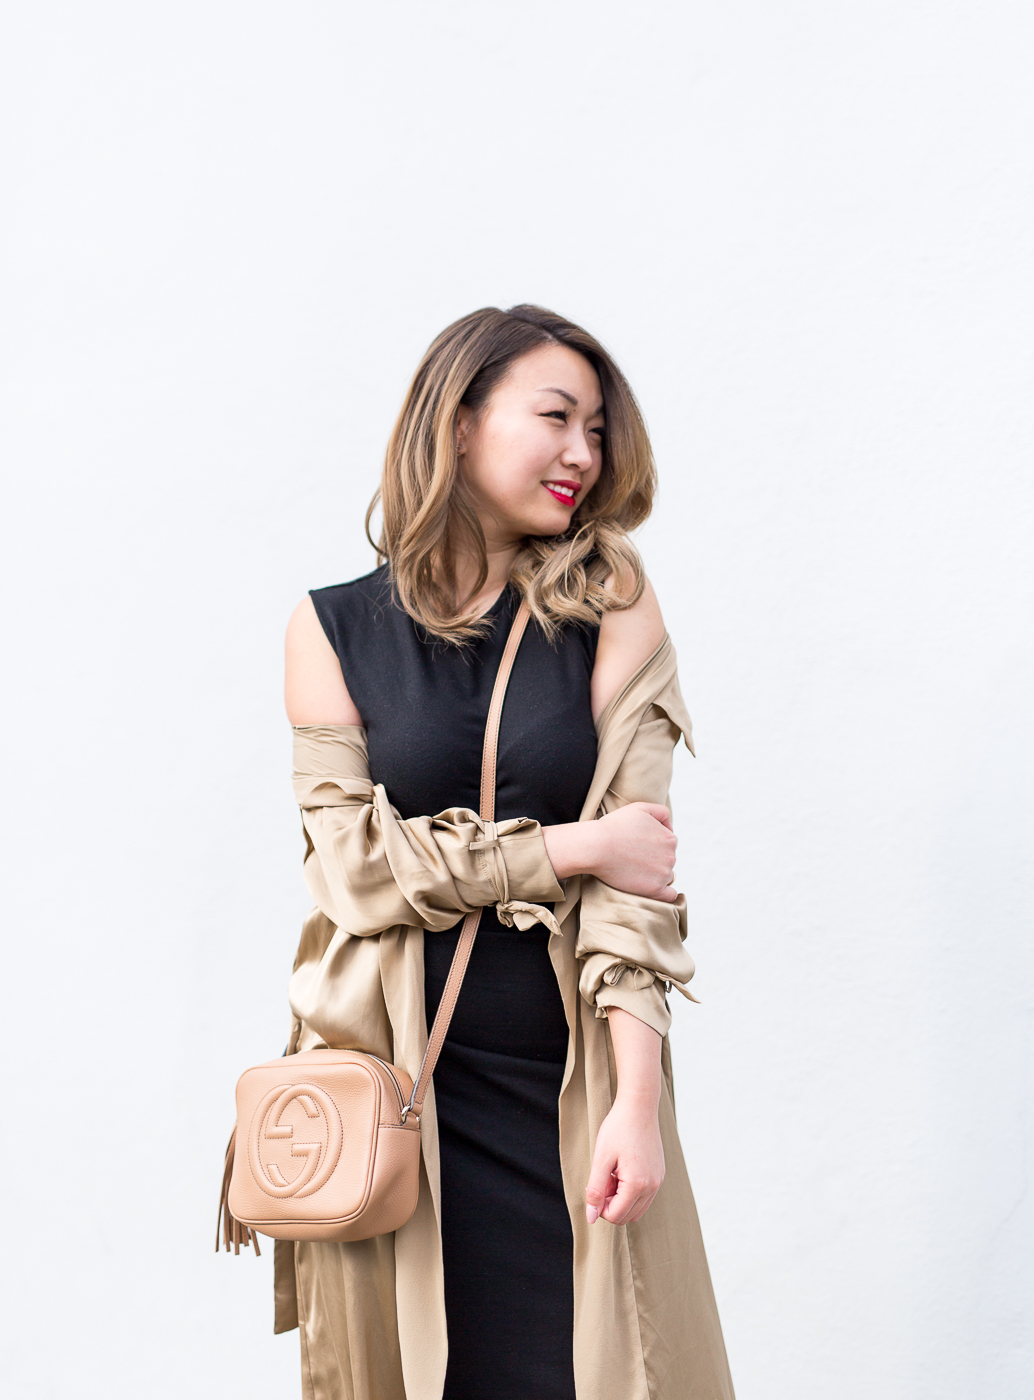 Aritzia Dress & Duster Jacket and Gucci Soho Disco Bag | The Chic Diary